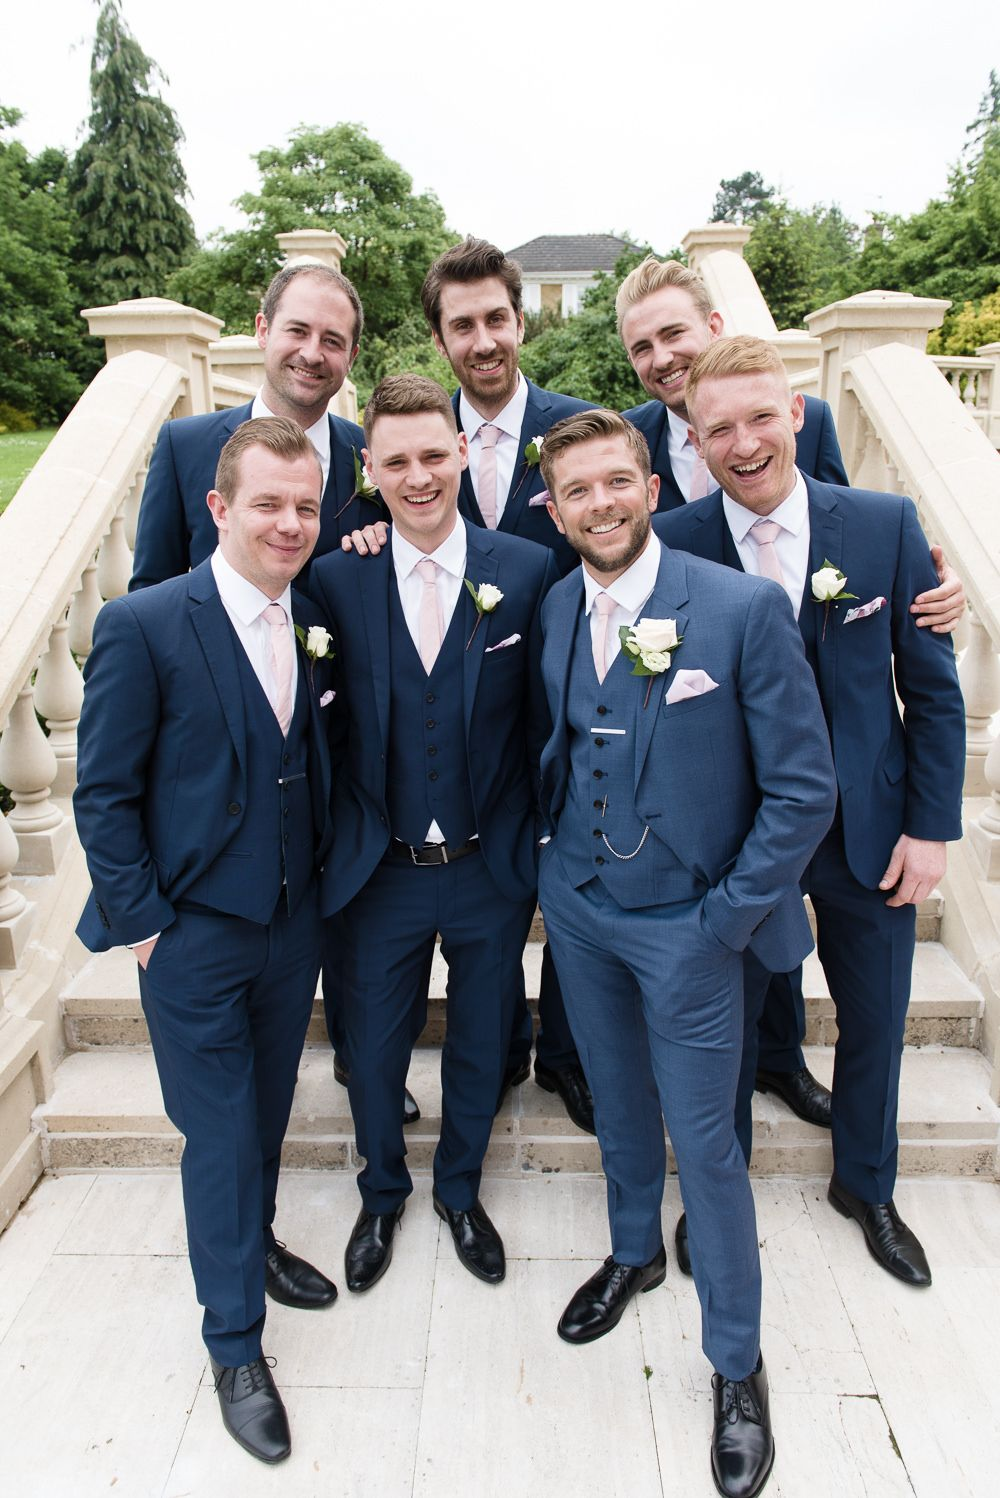 Cool Groomsmen Attire Ideas | Ted baker suits, Classic weddings ...